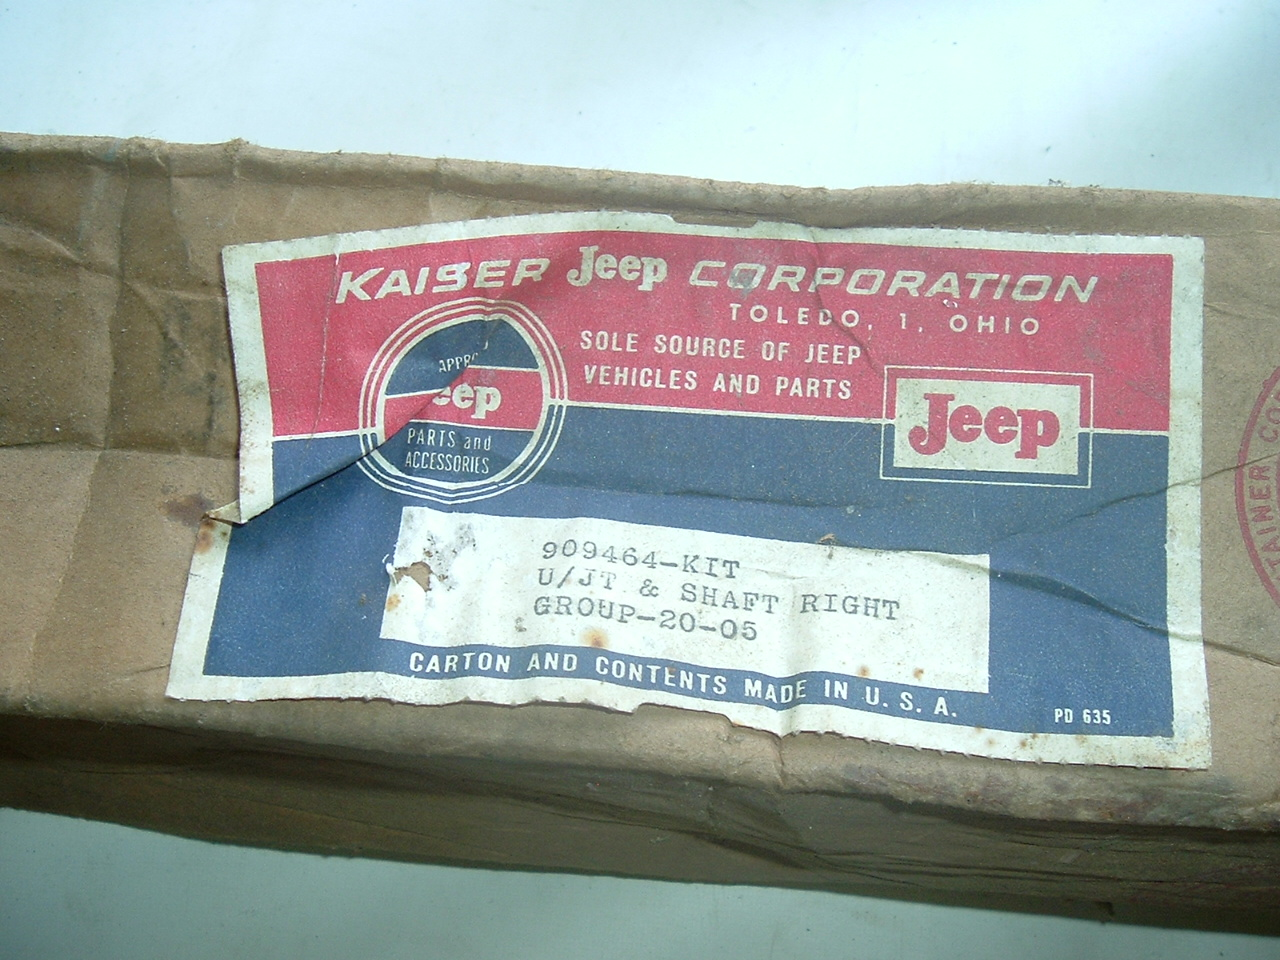 1946 -1964 -Jeep Truck & Station wagon front axle shaft w/ u joint nos 909464 (a 909464)